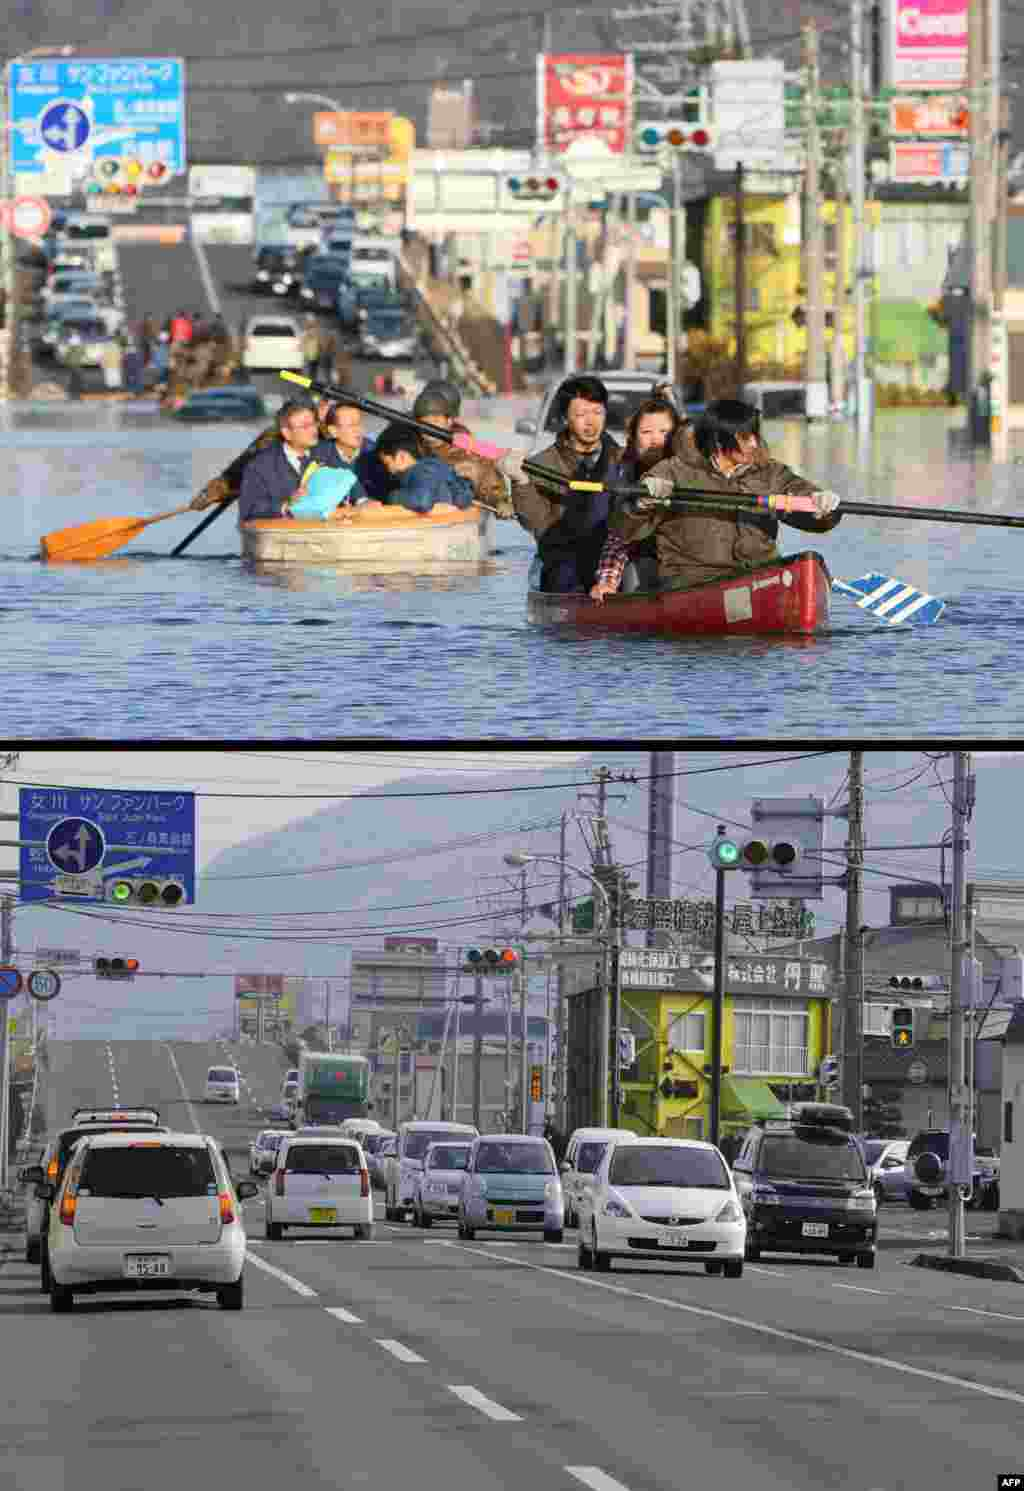 On top, people evacuating with small boats down a road flooded by the tsunami in the city of Ishinomaki in Miyagi Prefecture on March 12, 2011, and below, the same area on January 13, 2012